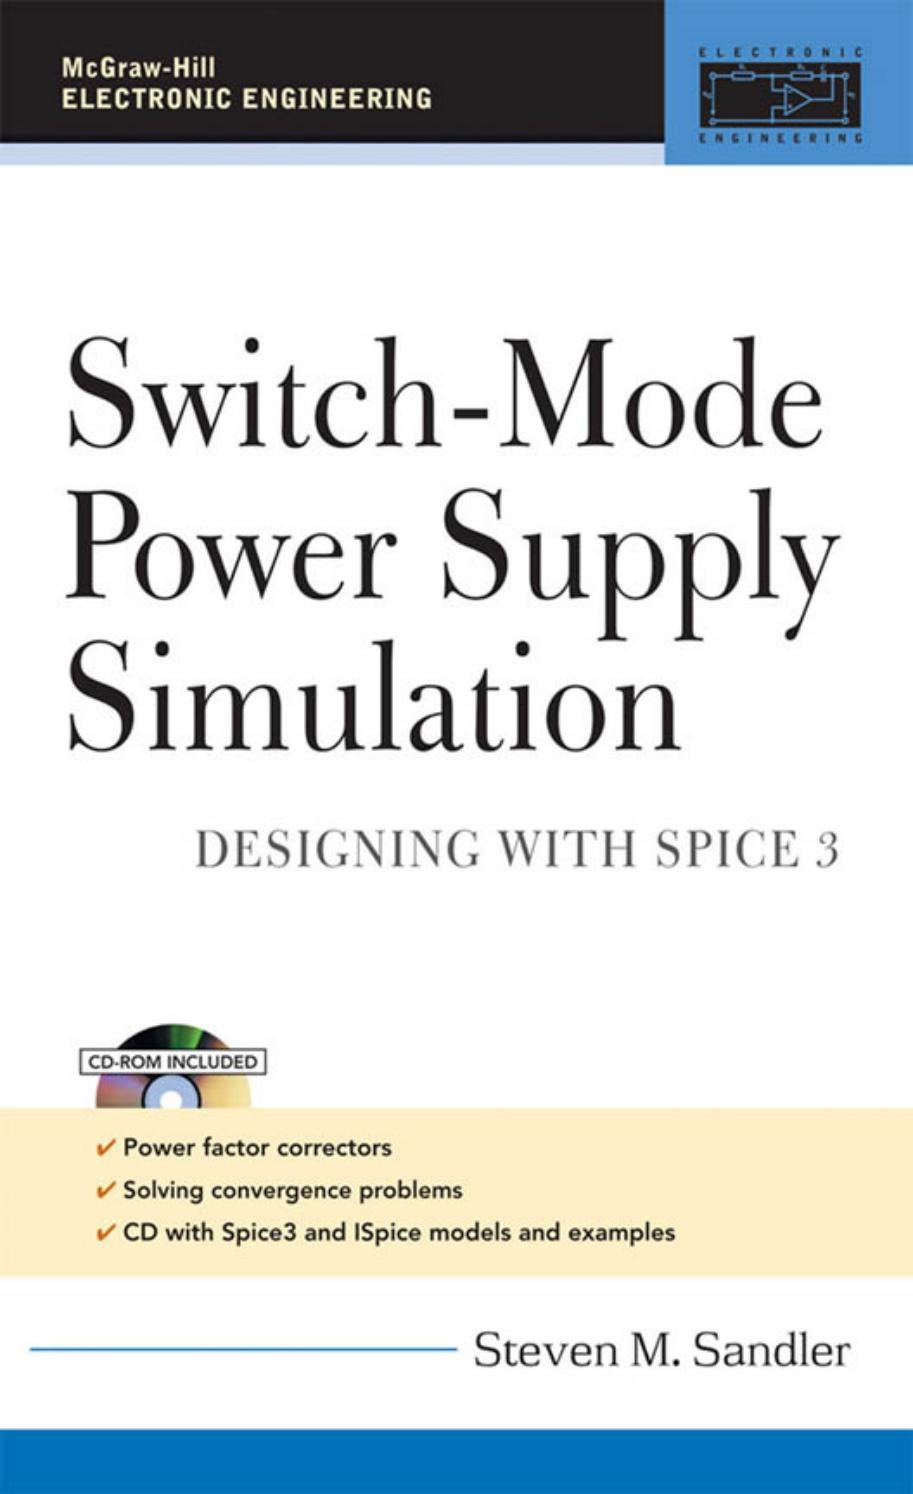 SWITCH MODE POWER SUPPLY SIMULATION by armando cavero - issuu